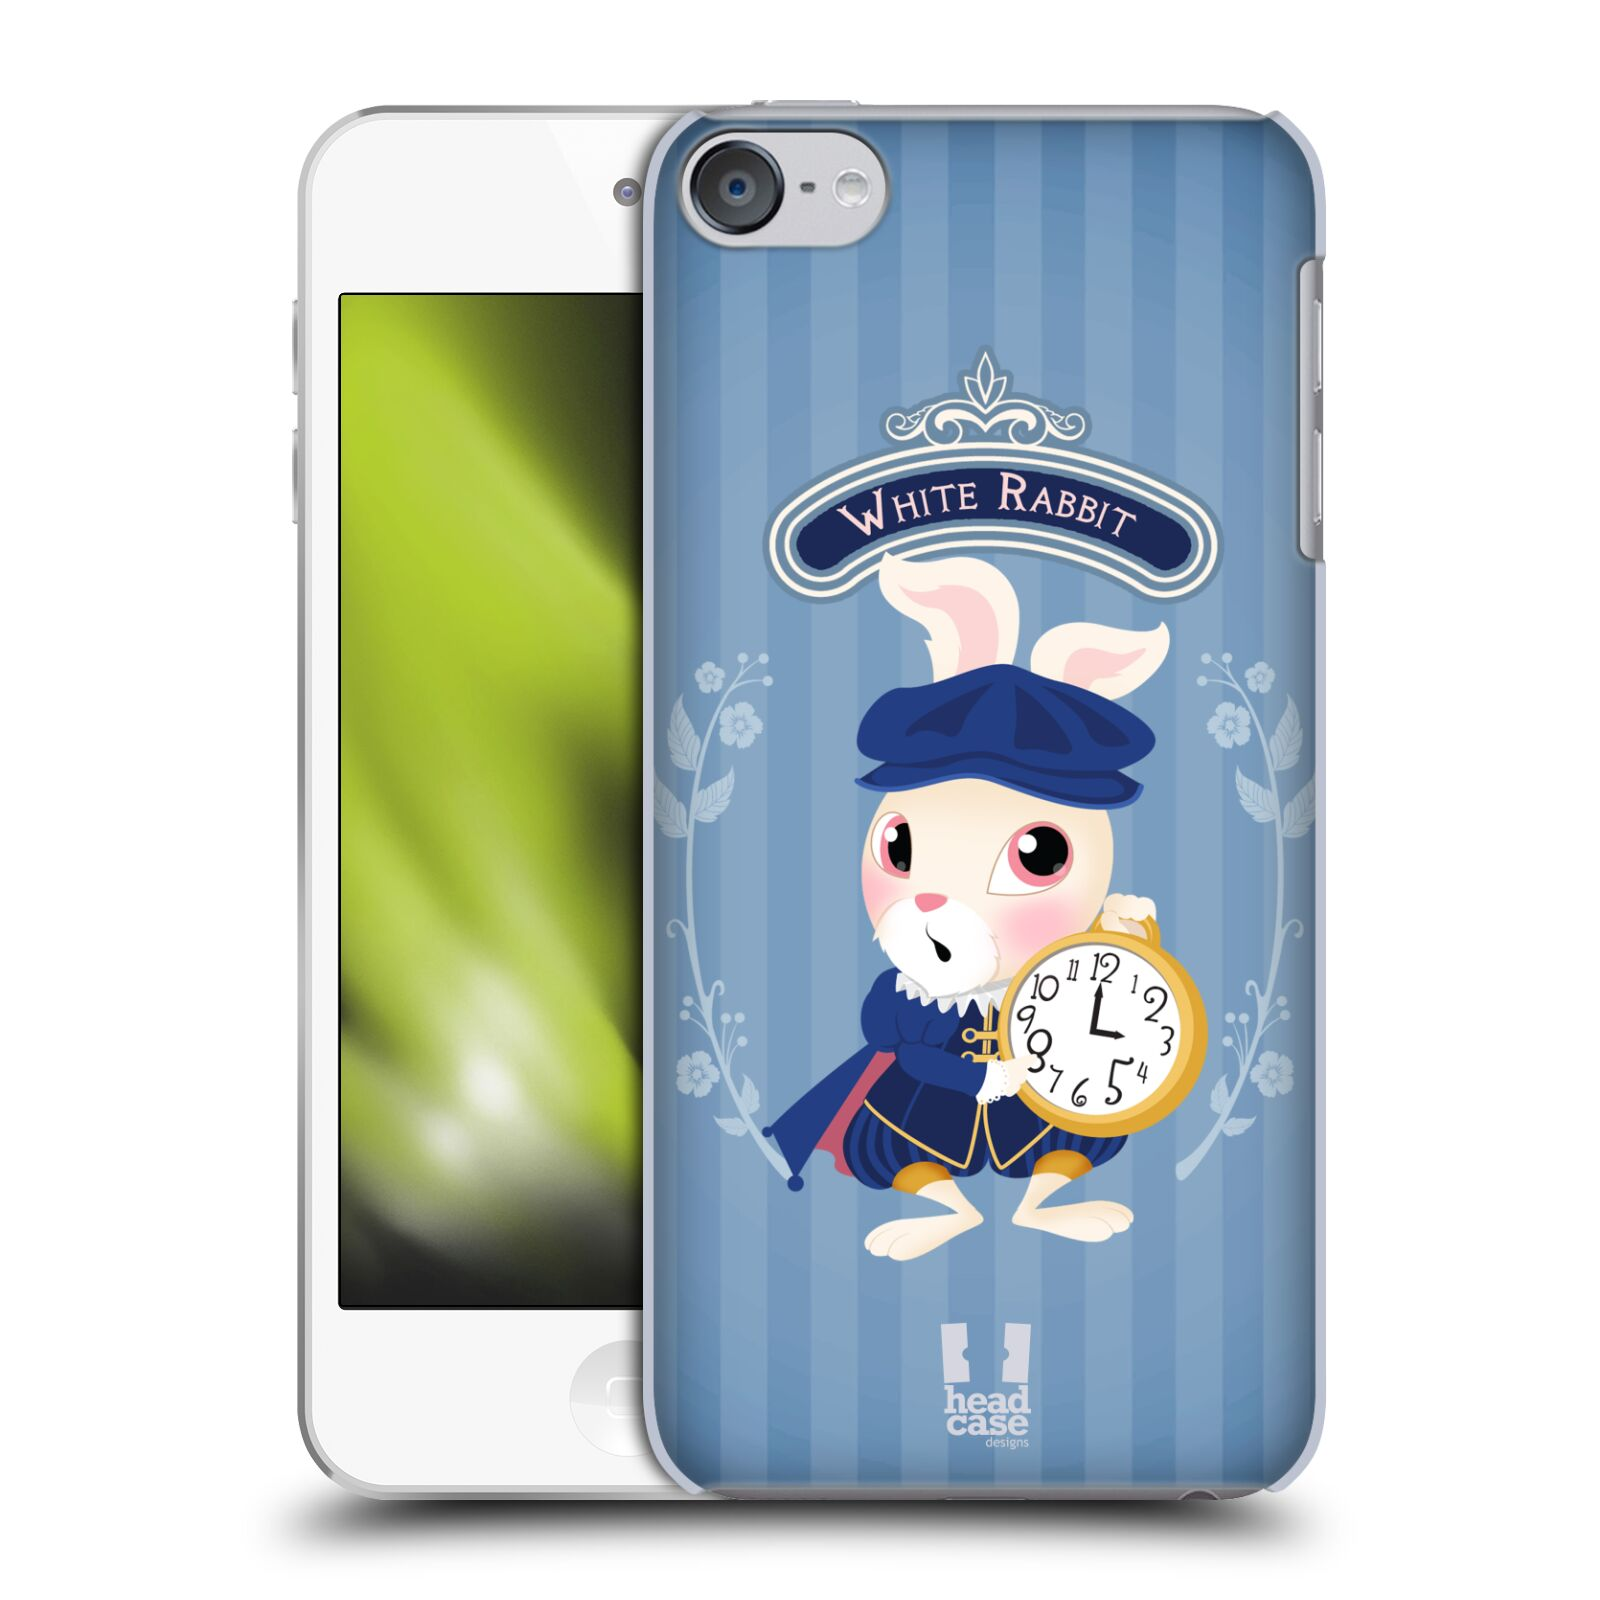 Taki Taki Lumba Mp3 Audio: HEAD CASE DESIGNS ALICE IN WONDERLAND HARD BACK CASE FOR